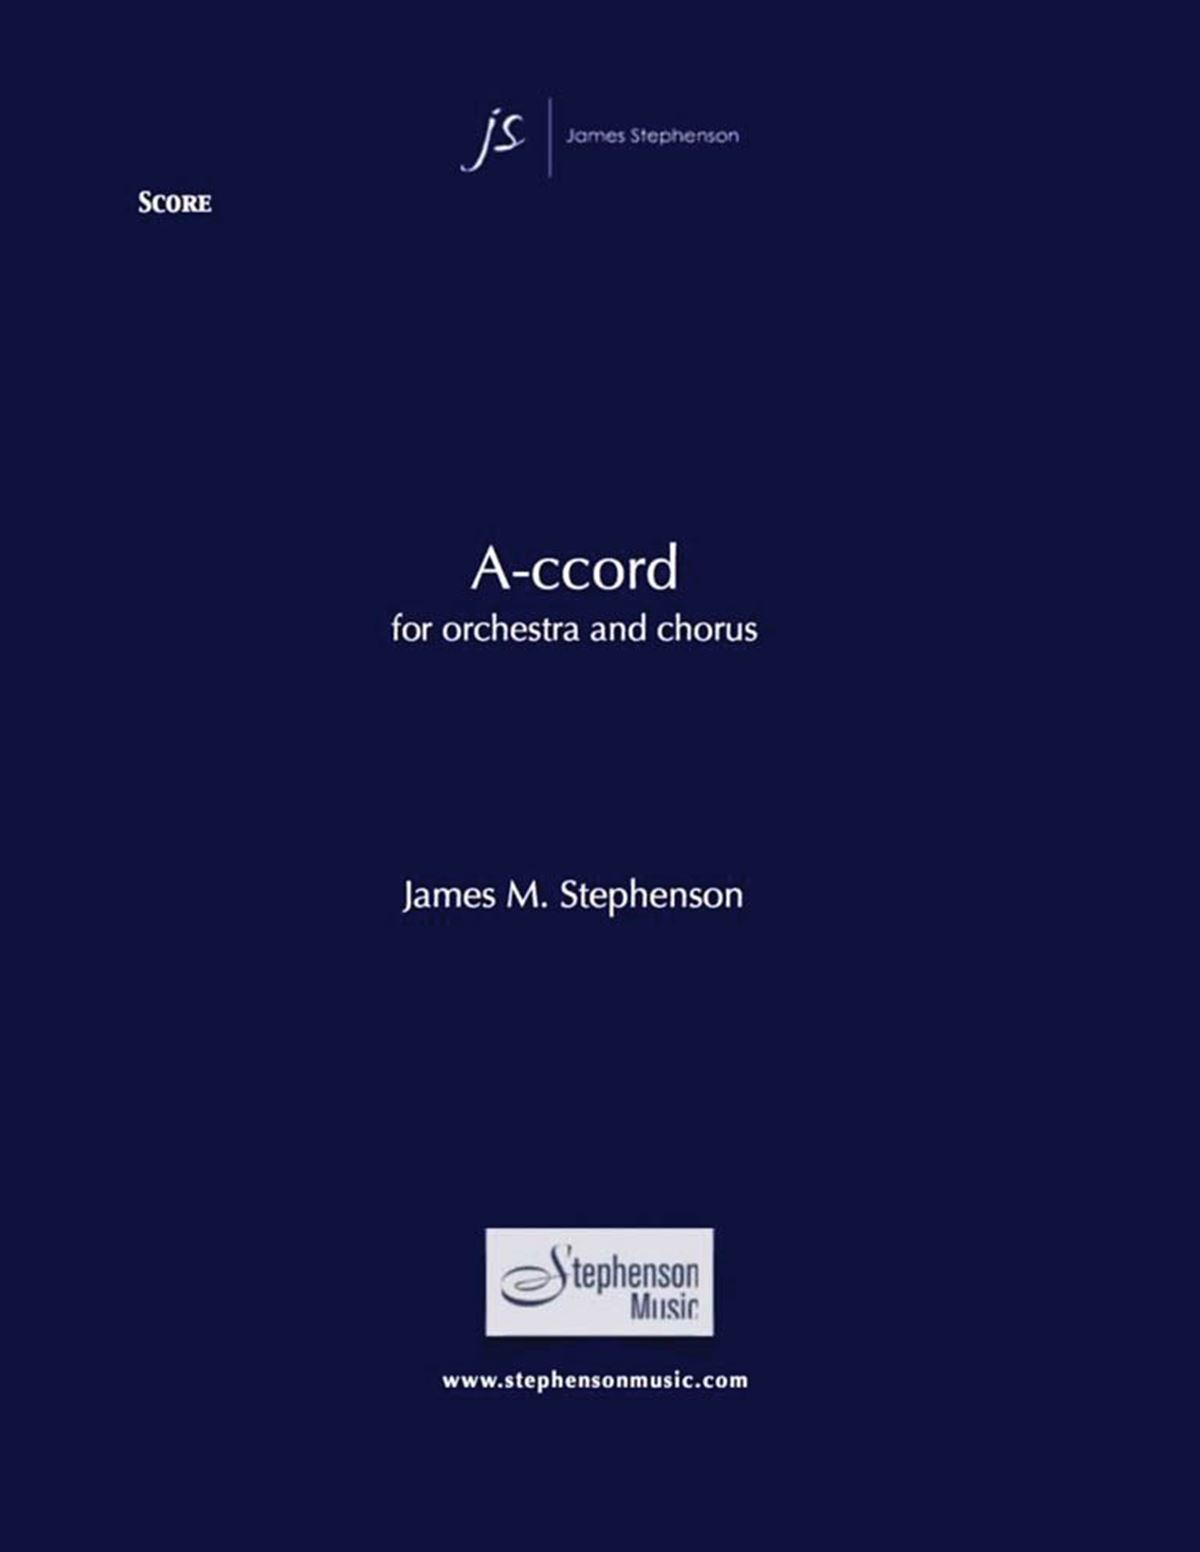 Jim Stephenson: A-ccord: Orchestra and Vocal: Score and PArts